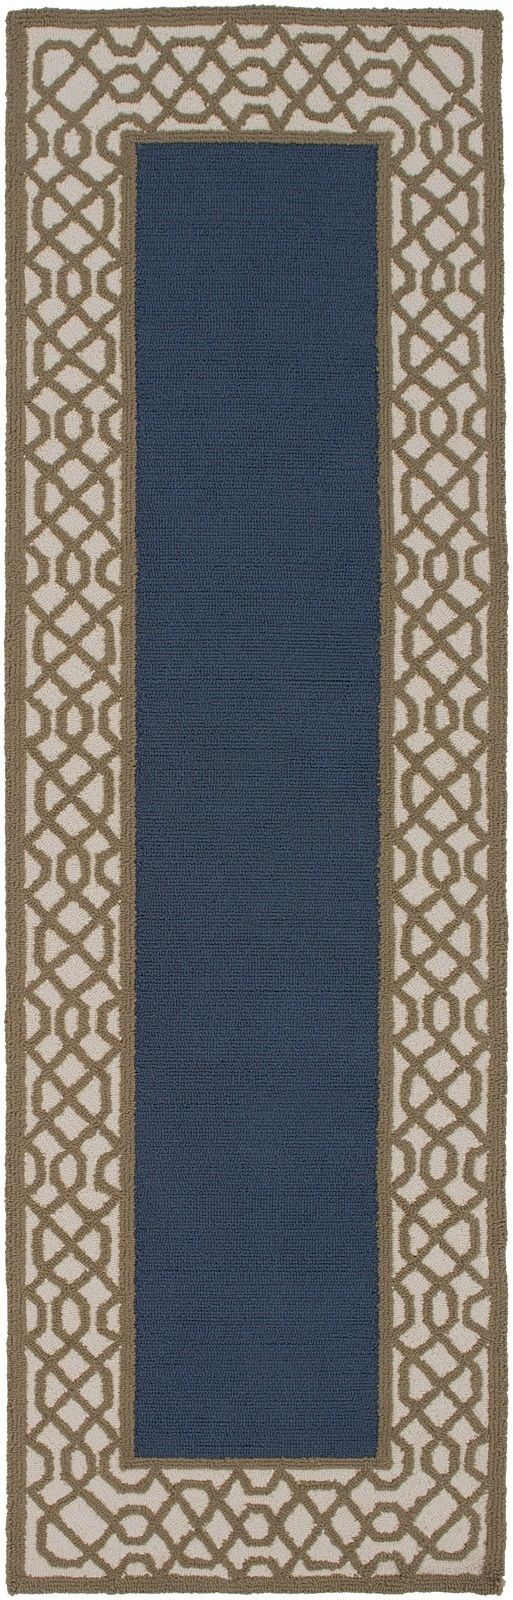 surya storm indoor/outdoor area rug collection